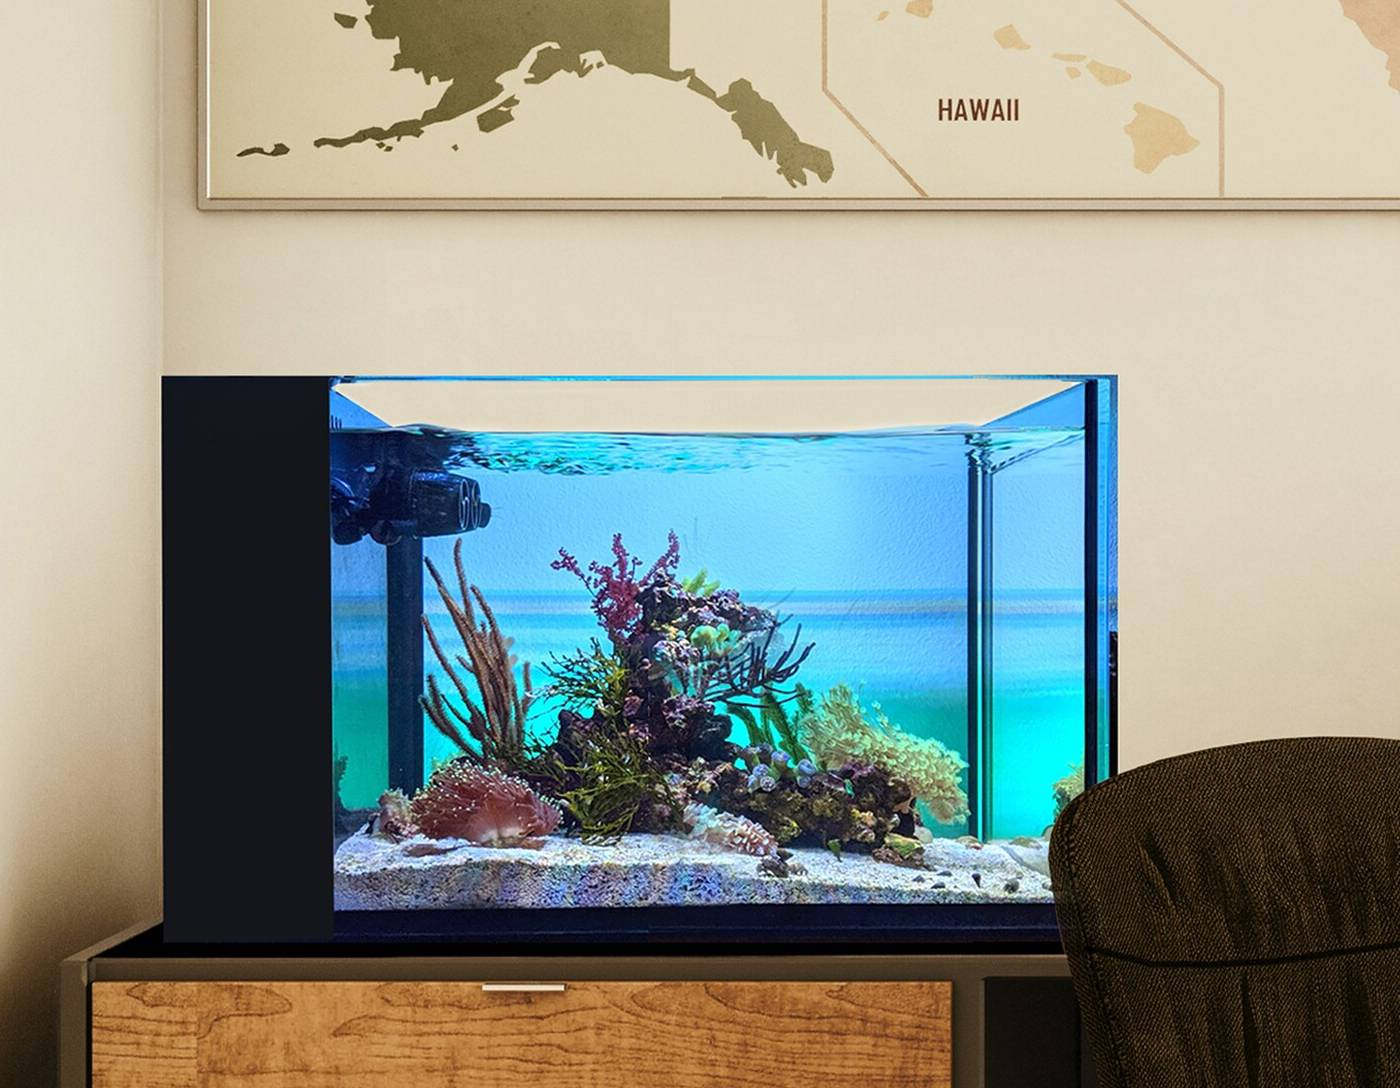 A set up nano tank in an office environment